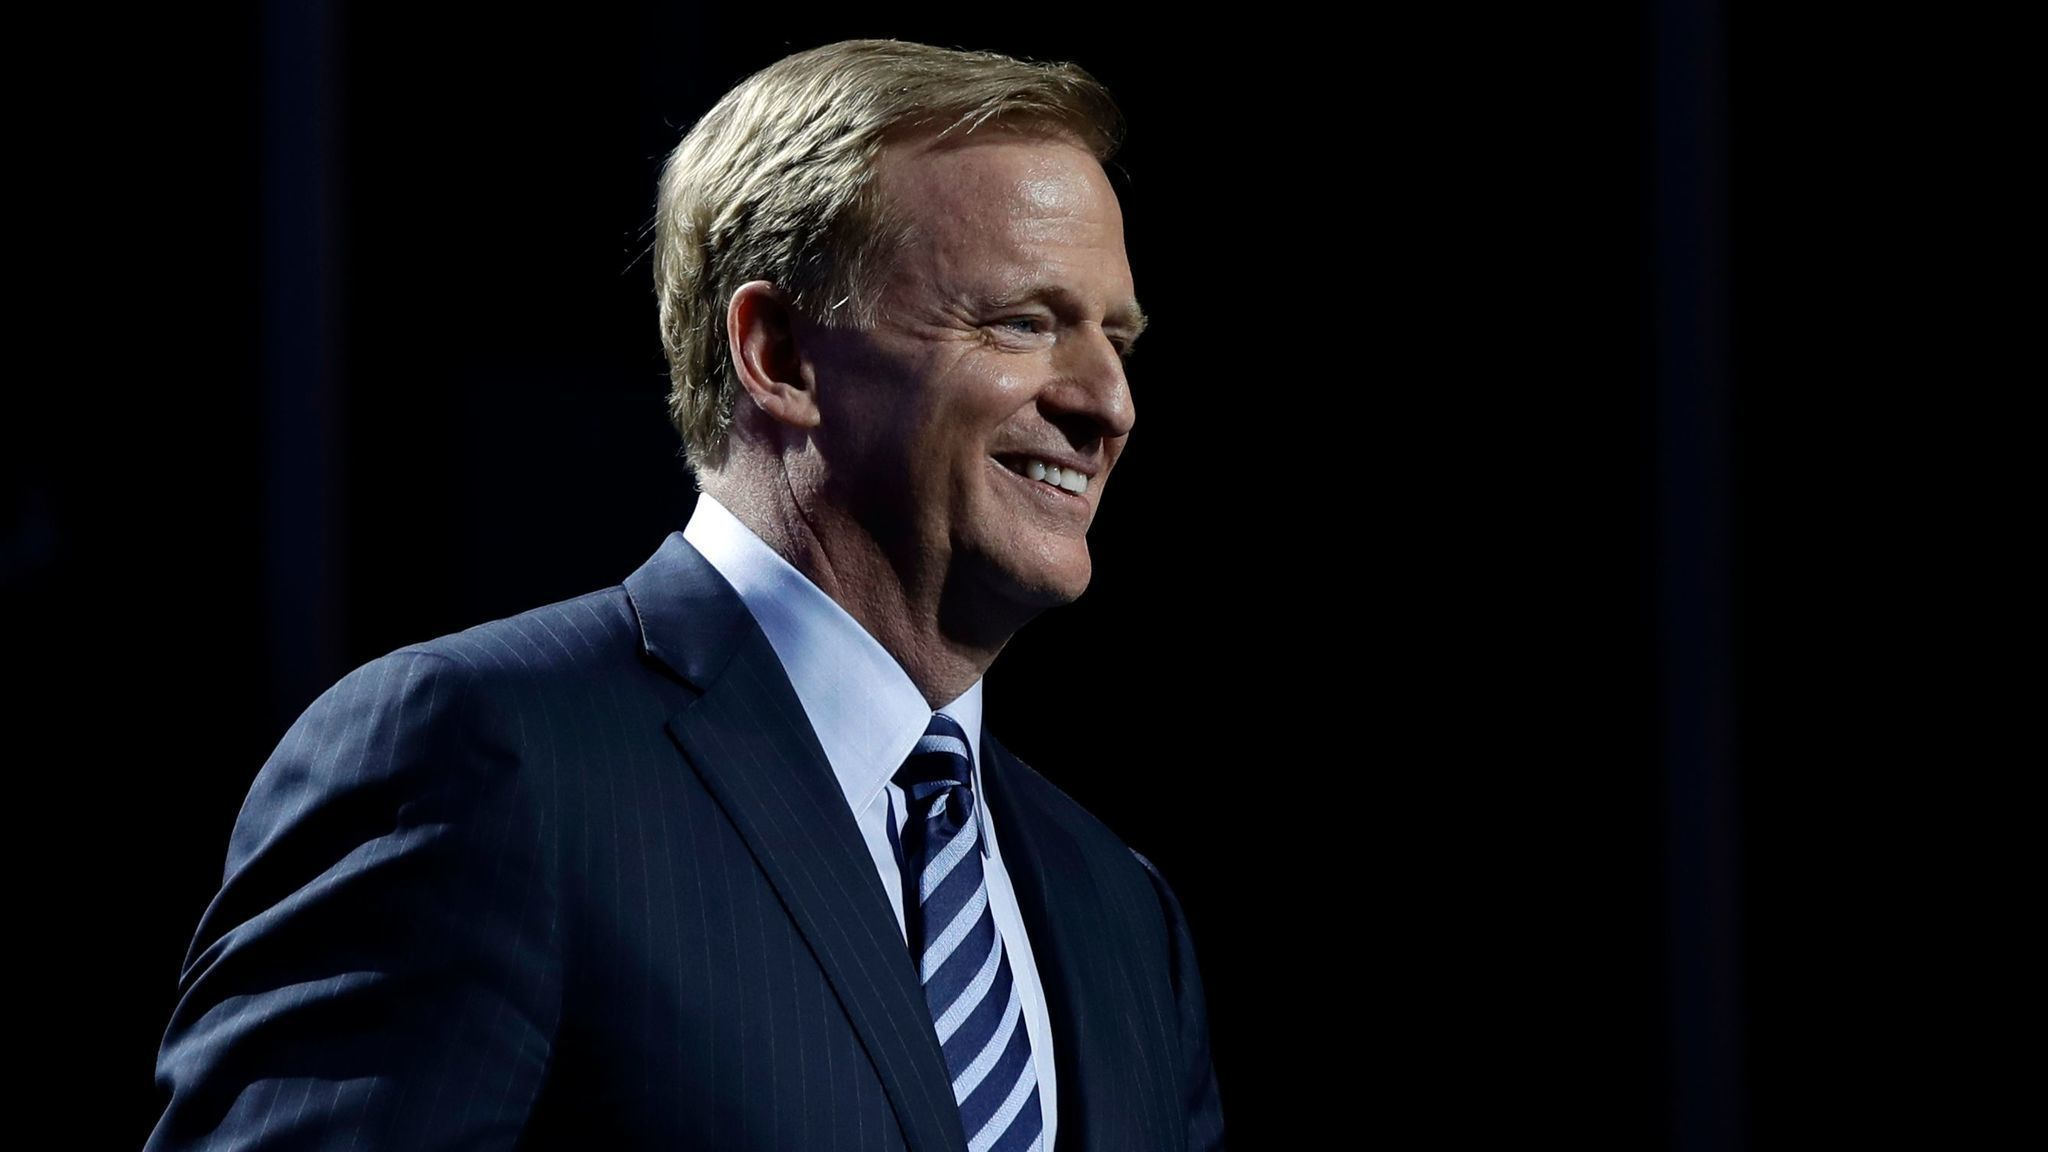 NFL's Roger Goodell: Marijuana is 'addictive' and 'may not be healthy for the players long term'